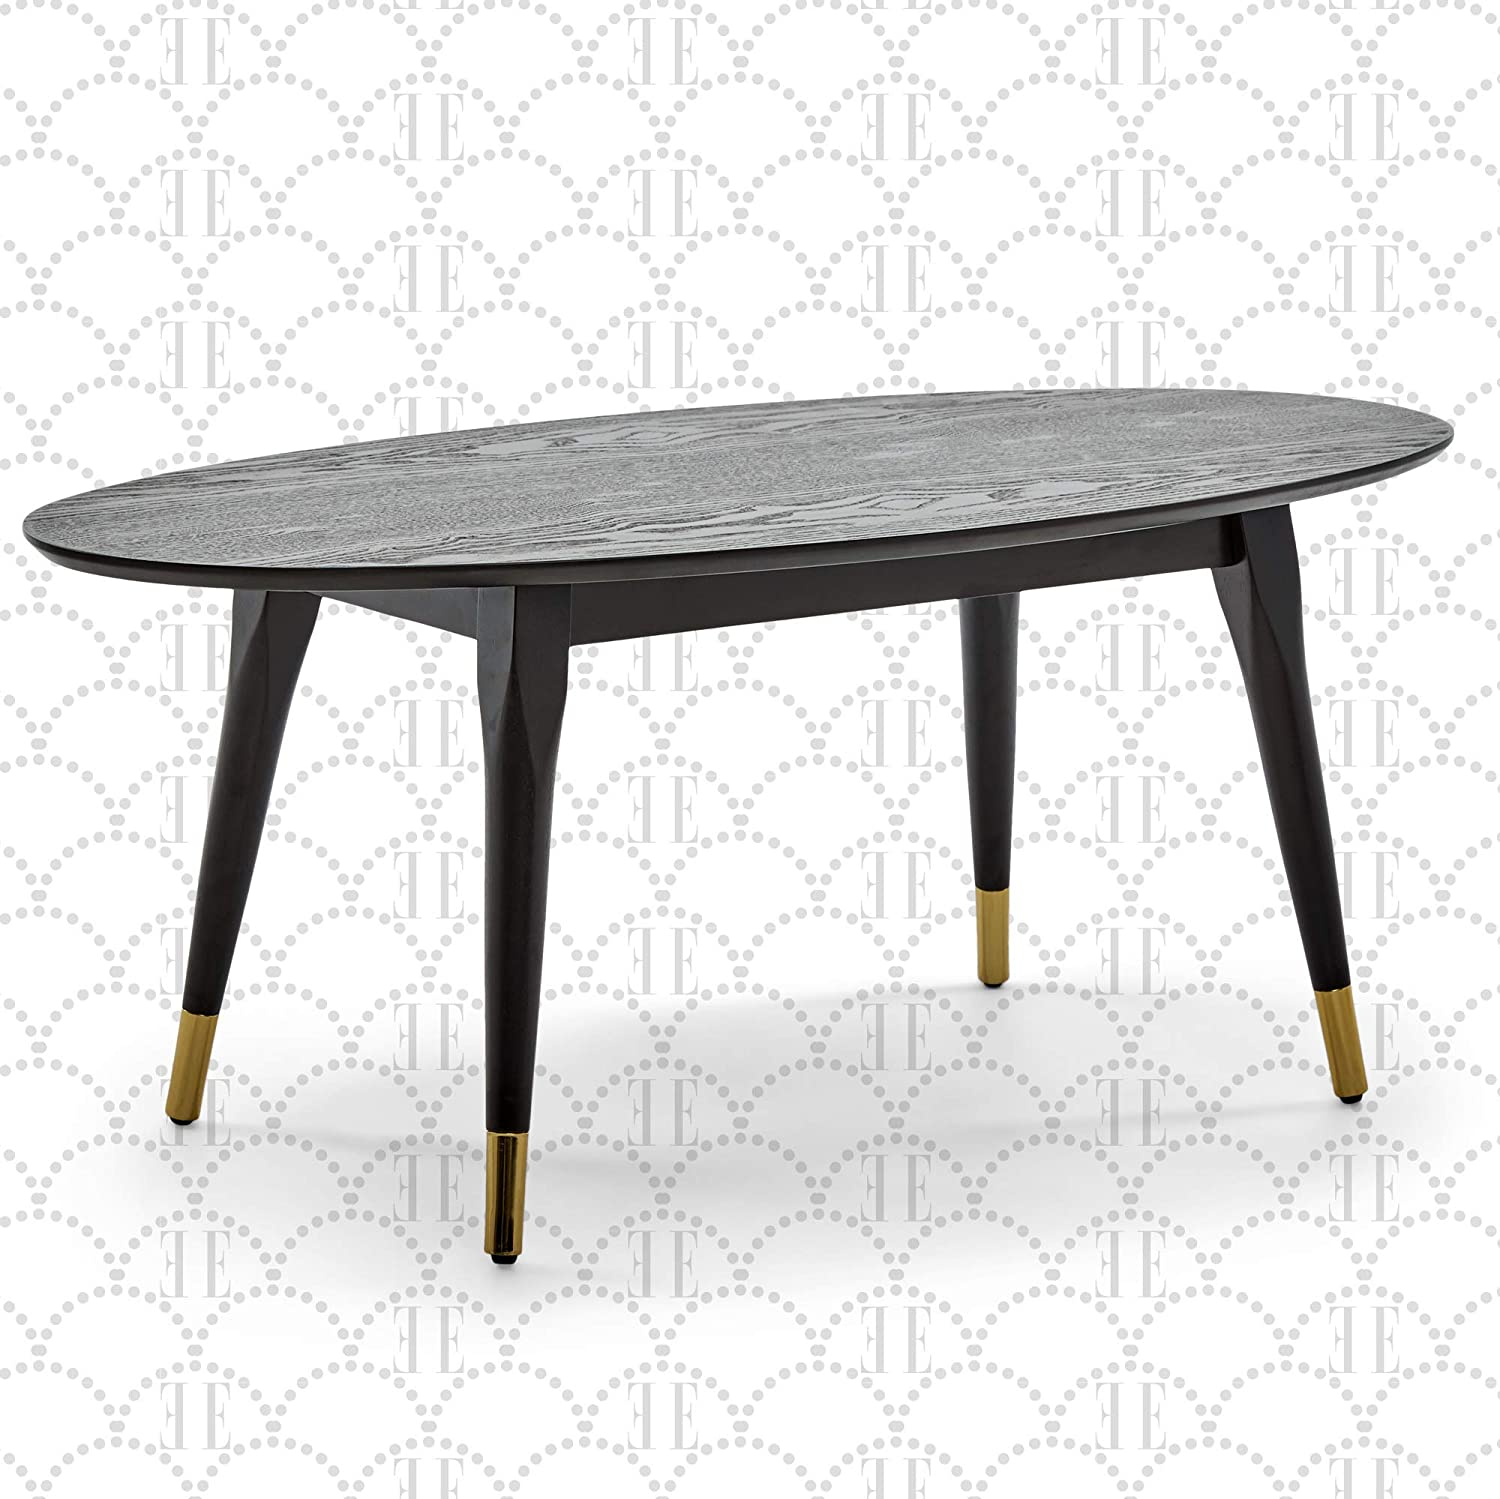 Elle Decor Clementine Mid-Century Modern Living Room Furniture Collection, Oval Coffee Table, Cocoa